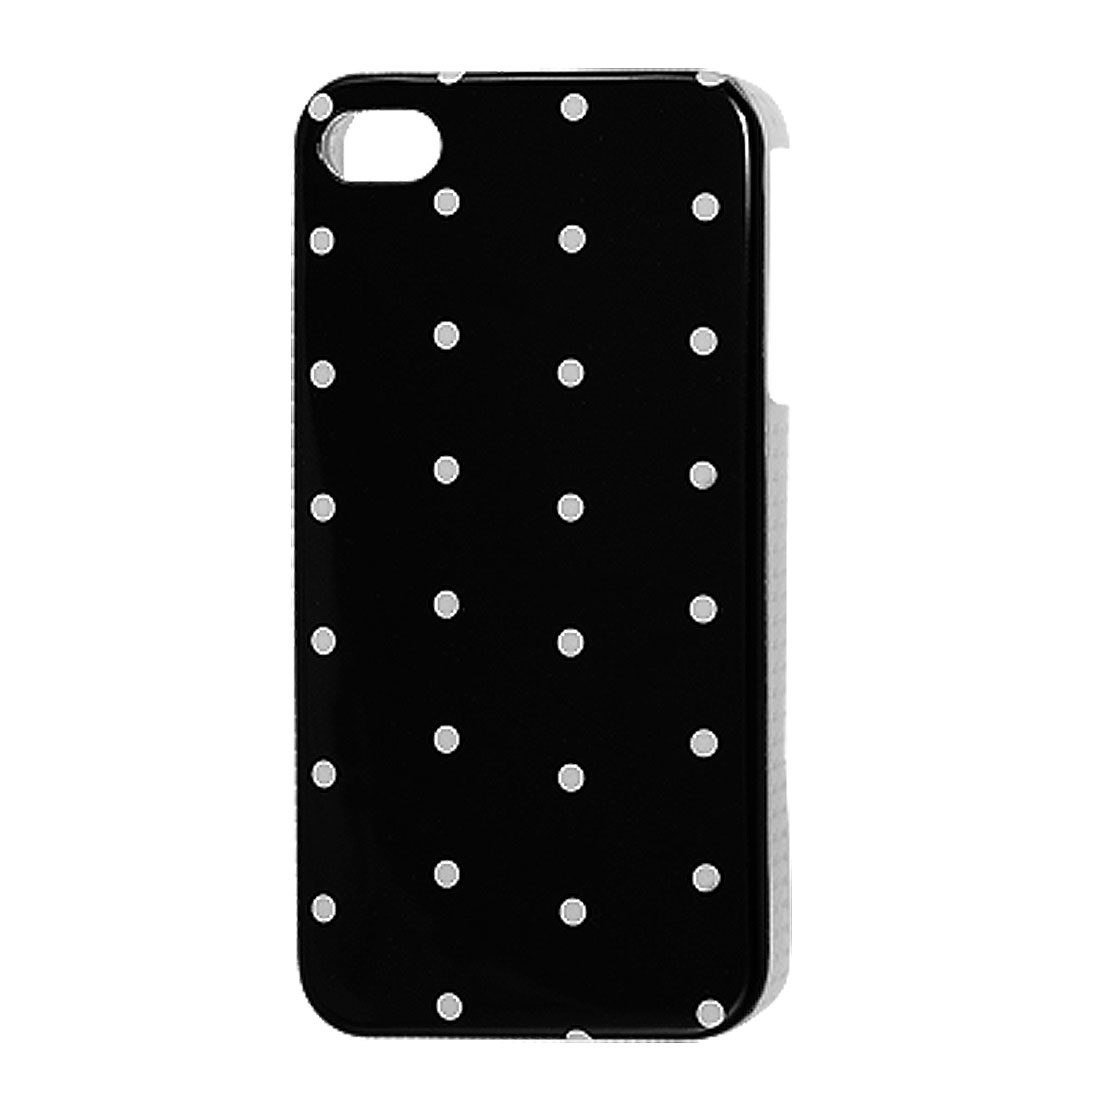 IMD White Dots Accent Black Plastic Back Cover for iPhone 4 4G 4S